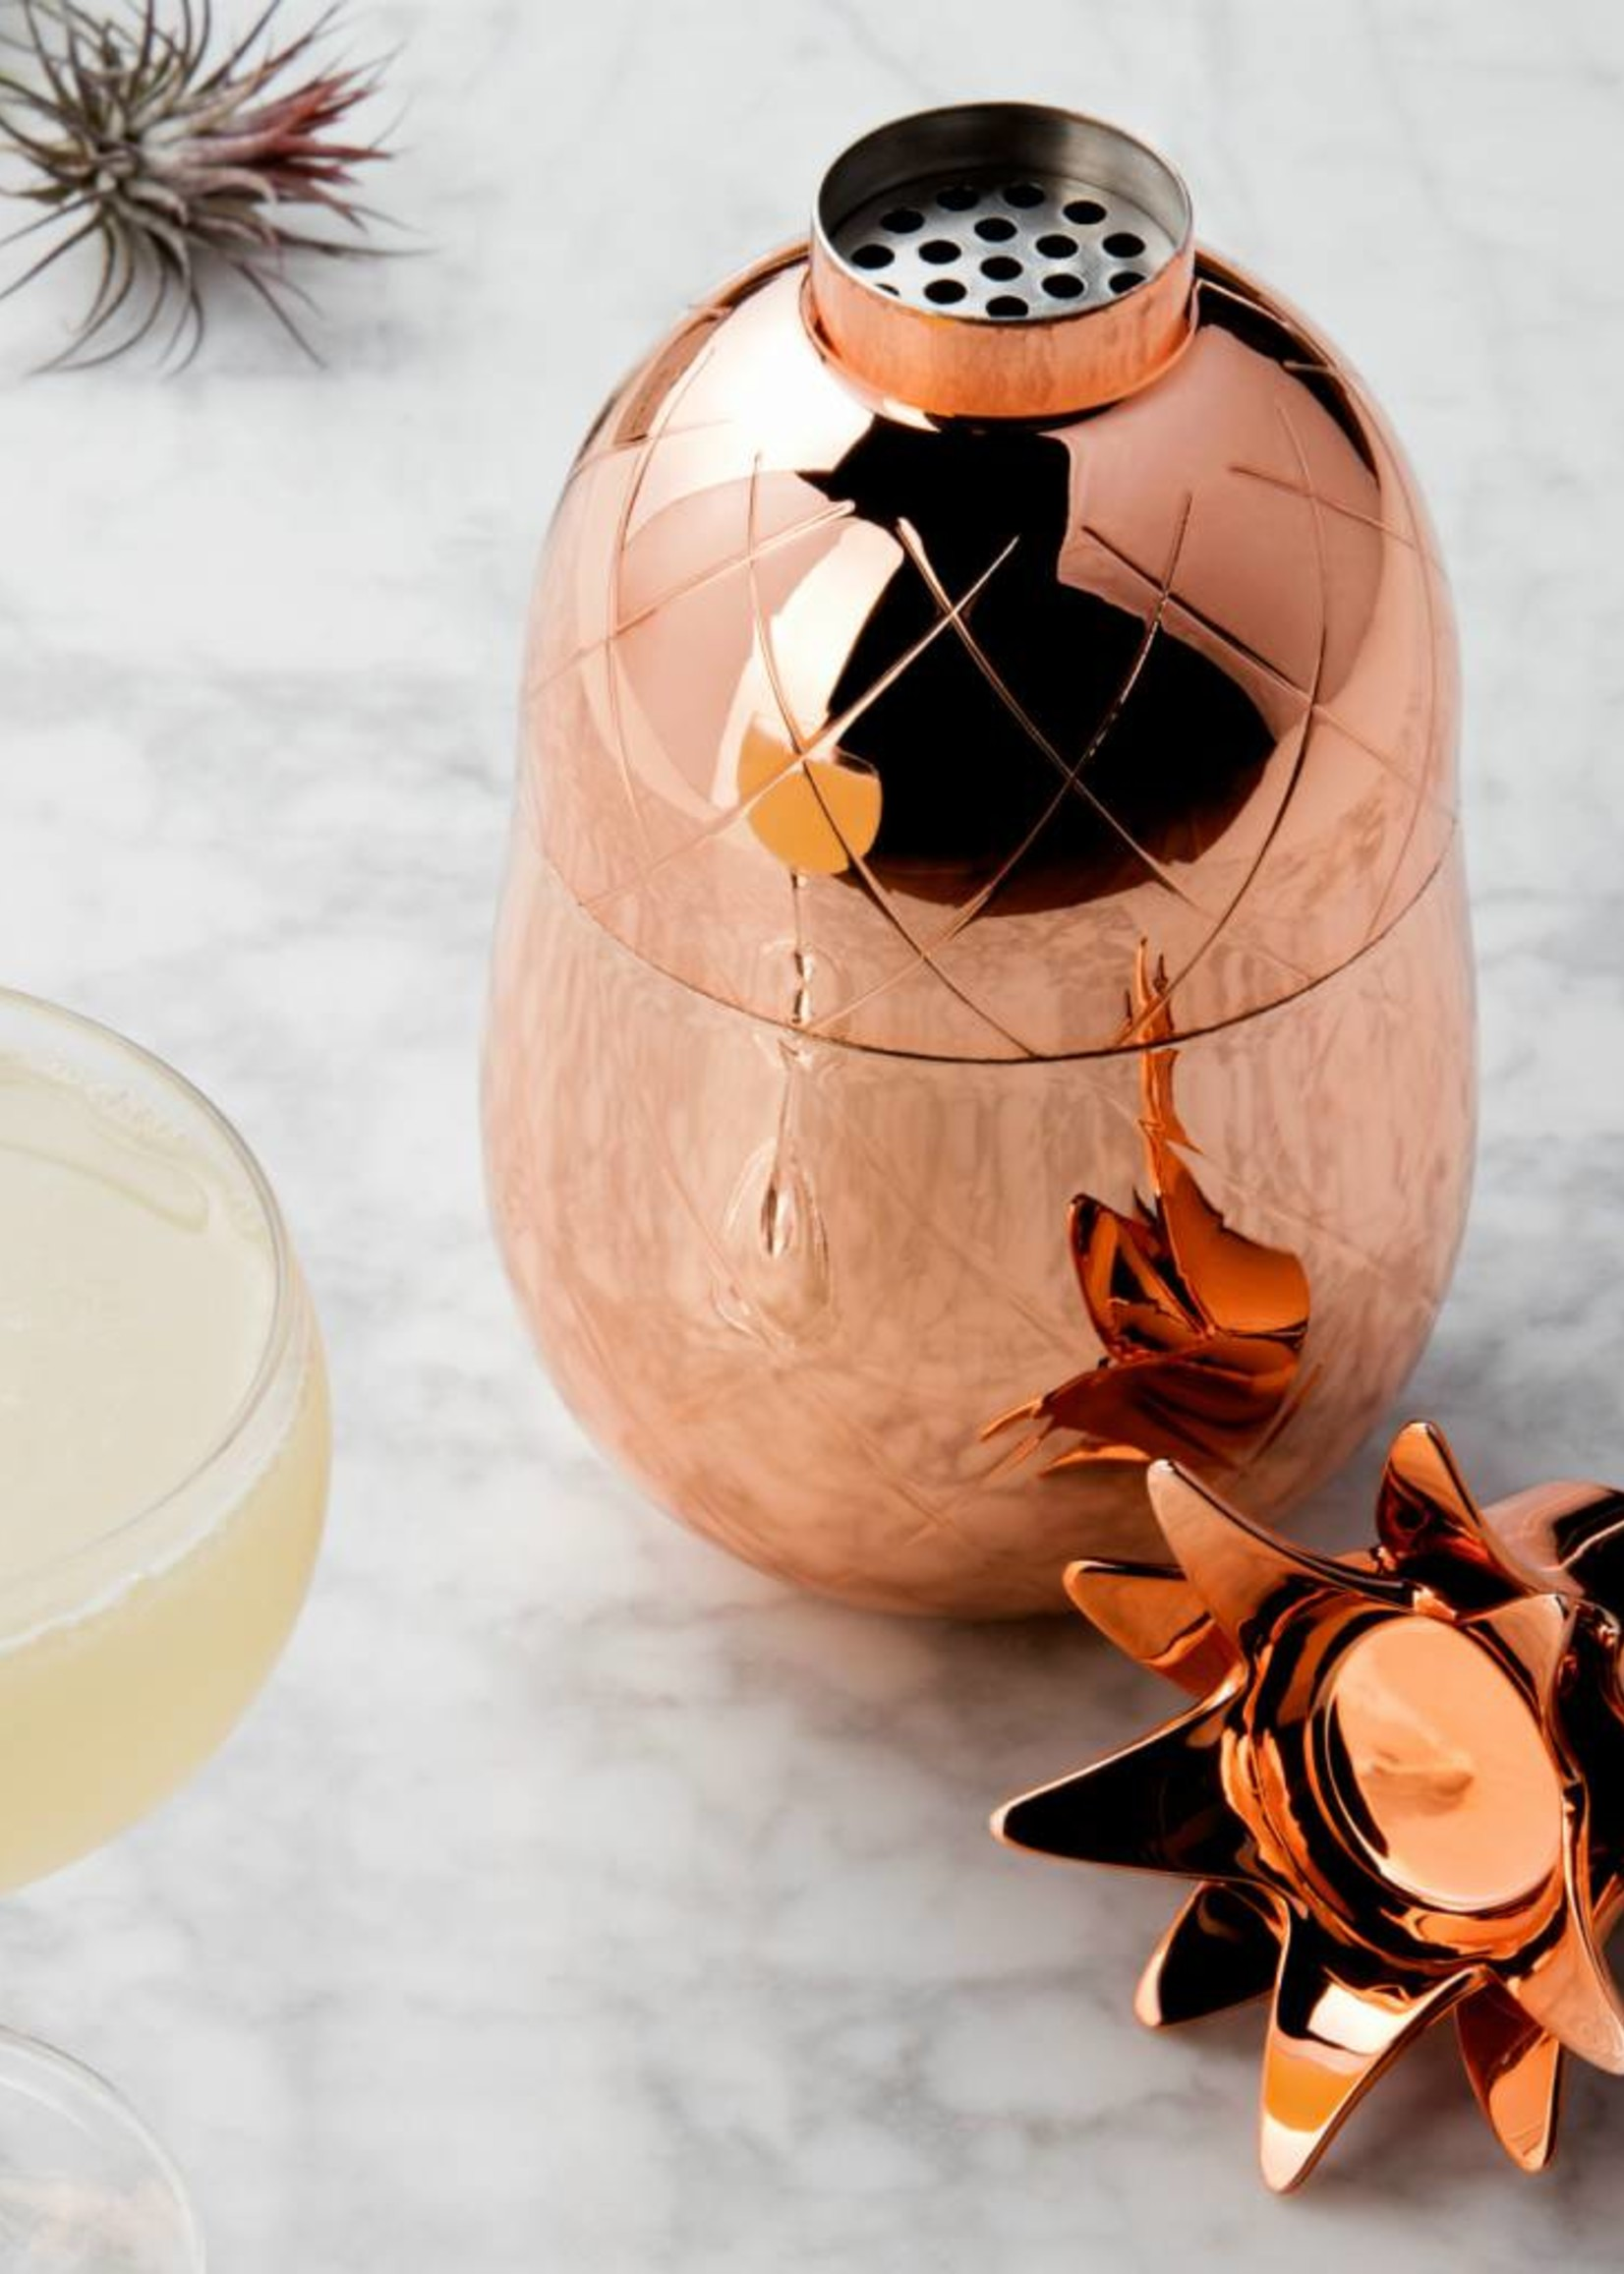 W&P Pineapple Cocktail Shaker